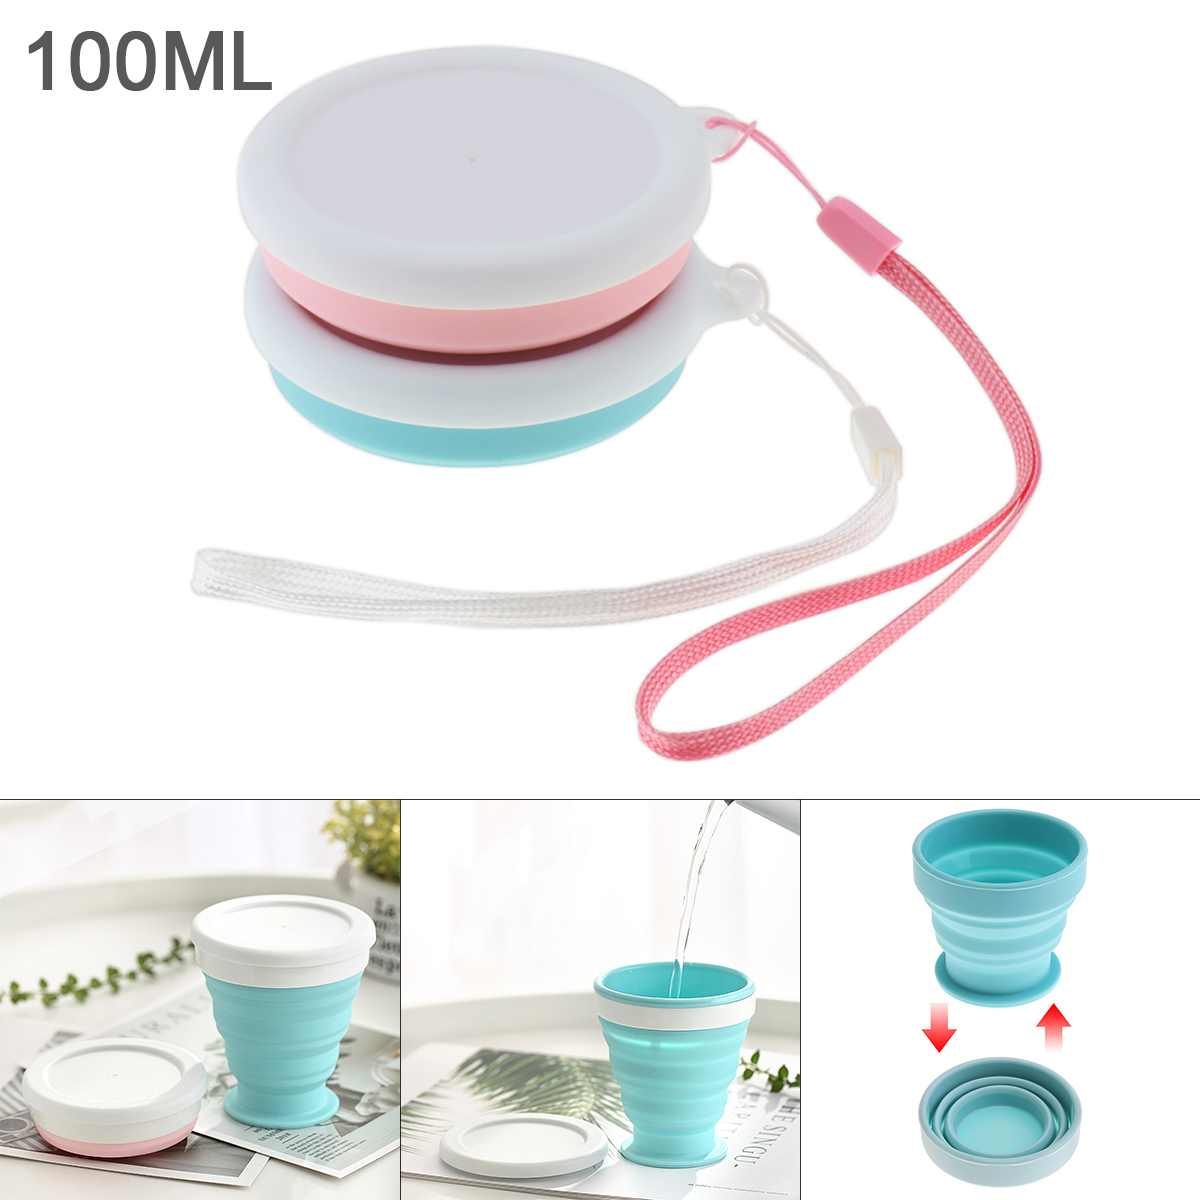 100ML 2 Colors Portable Circular Scalable Silicone Folding Cup with  Tether for - 50 Centigrade ~ 200